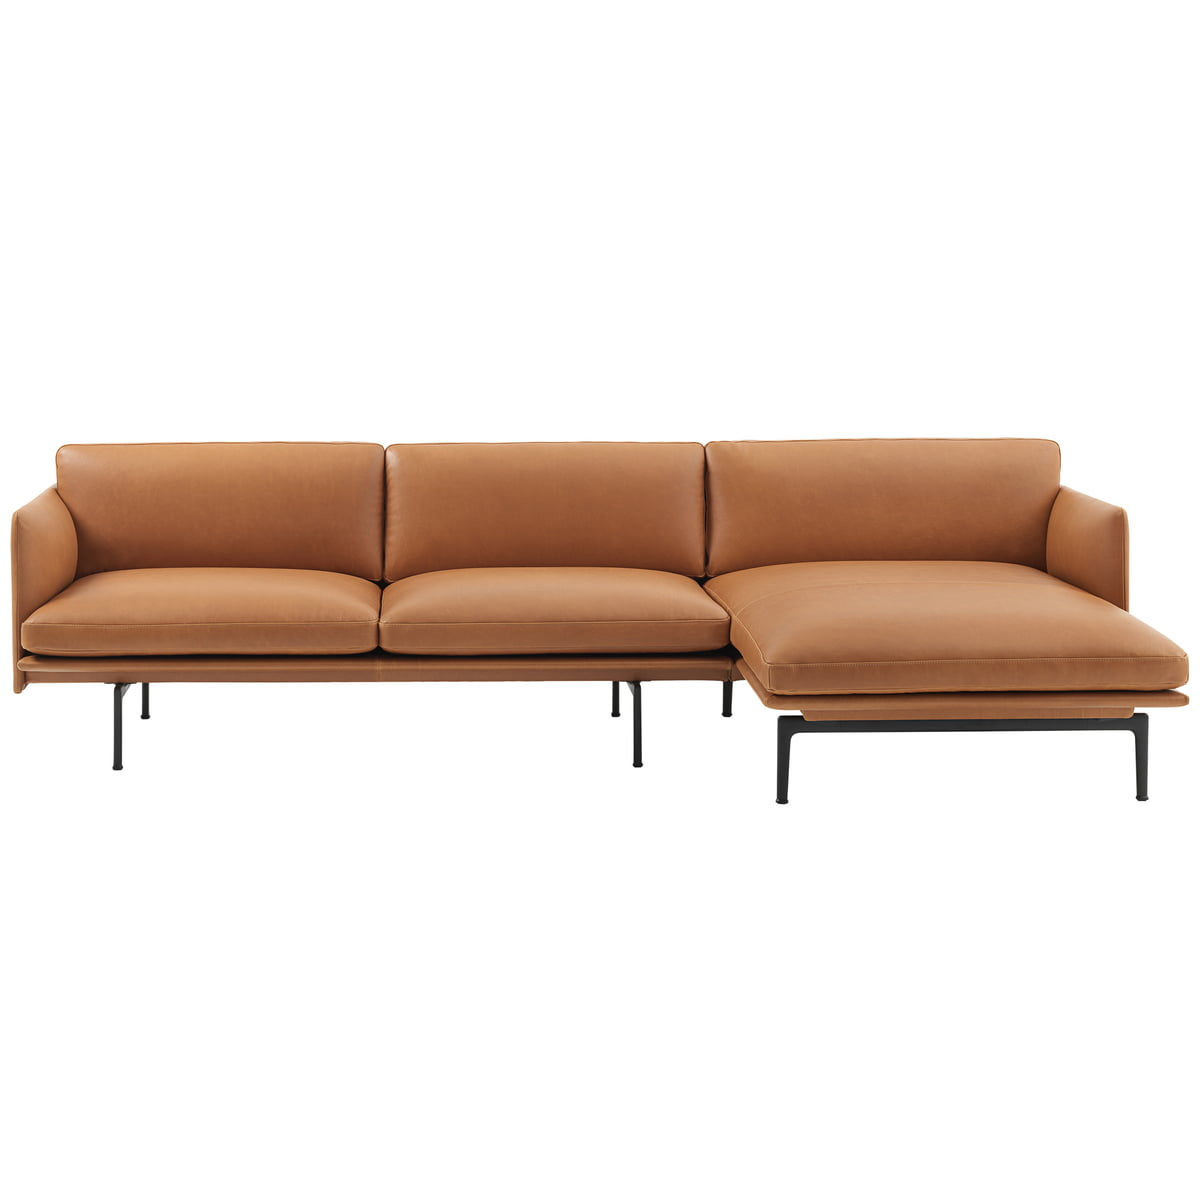 Chaise lounge sofa leder  Sofaecke Outline von Muuto | Connox